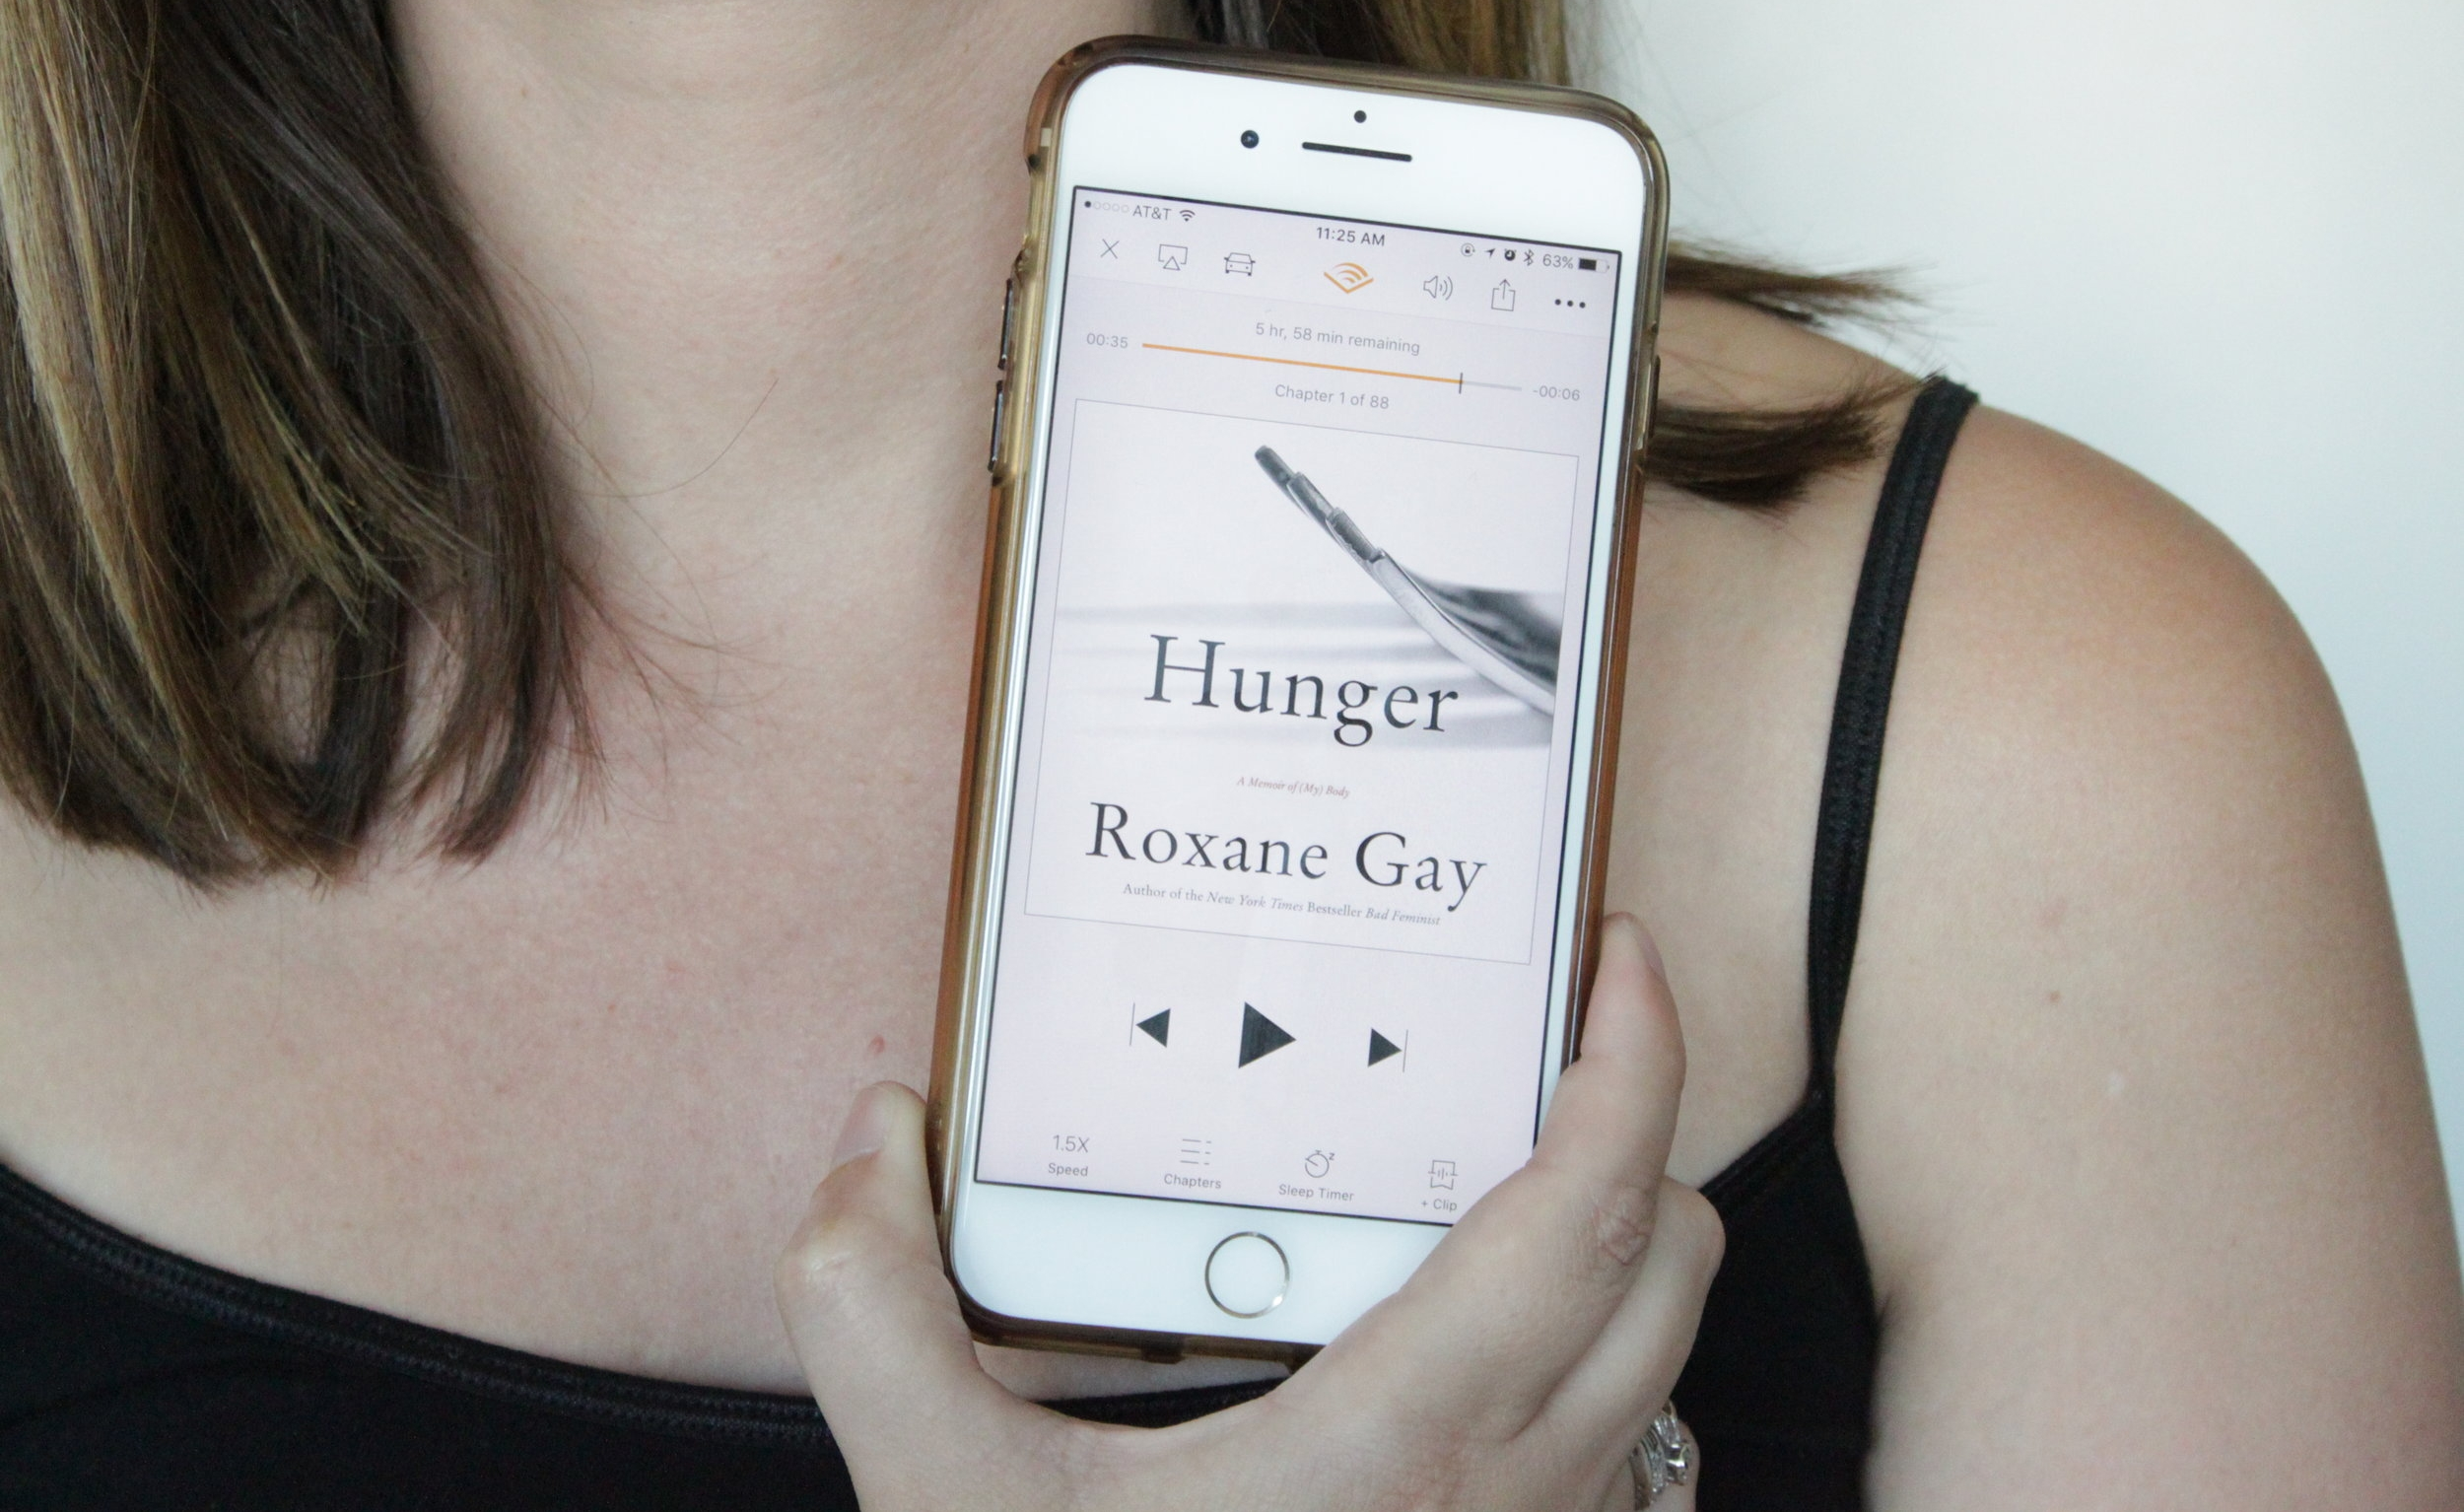 Reading Hunger: A Memoir of (My) Body by Roxane Gay on Audible